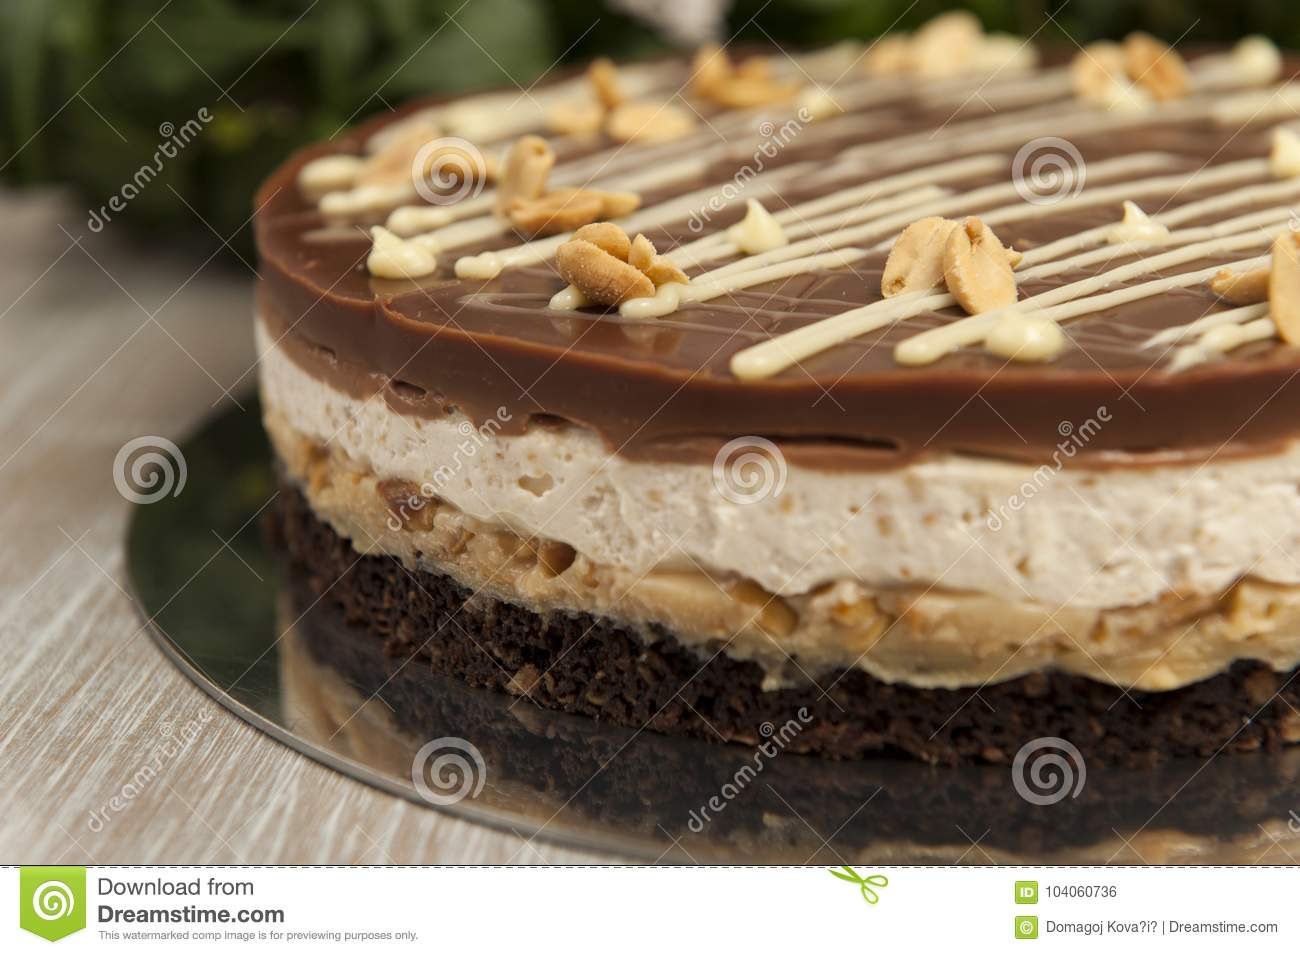 Snickers Kuchen Torte Chocolate Cake With Peanuts Snickers Cake Stock Photo Image Of